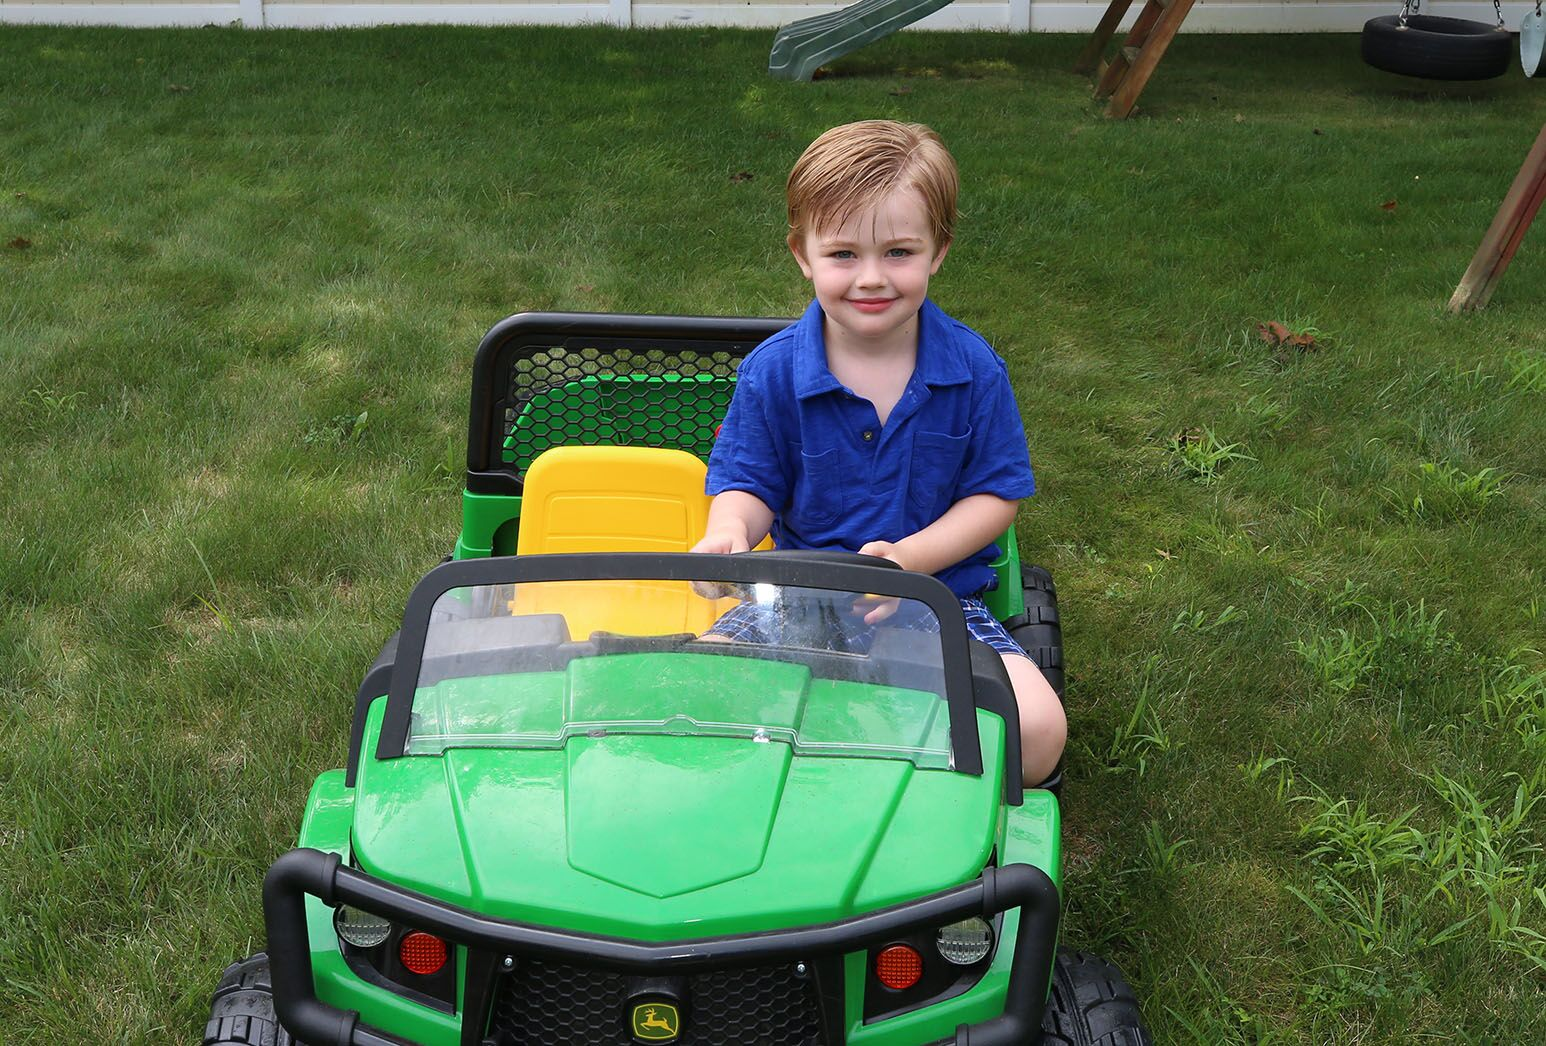 Young boy with blond hair in a blue shirt playing in a child-sized green truck.